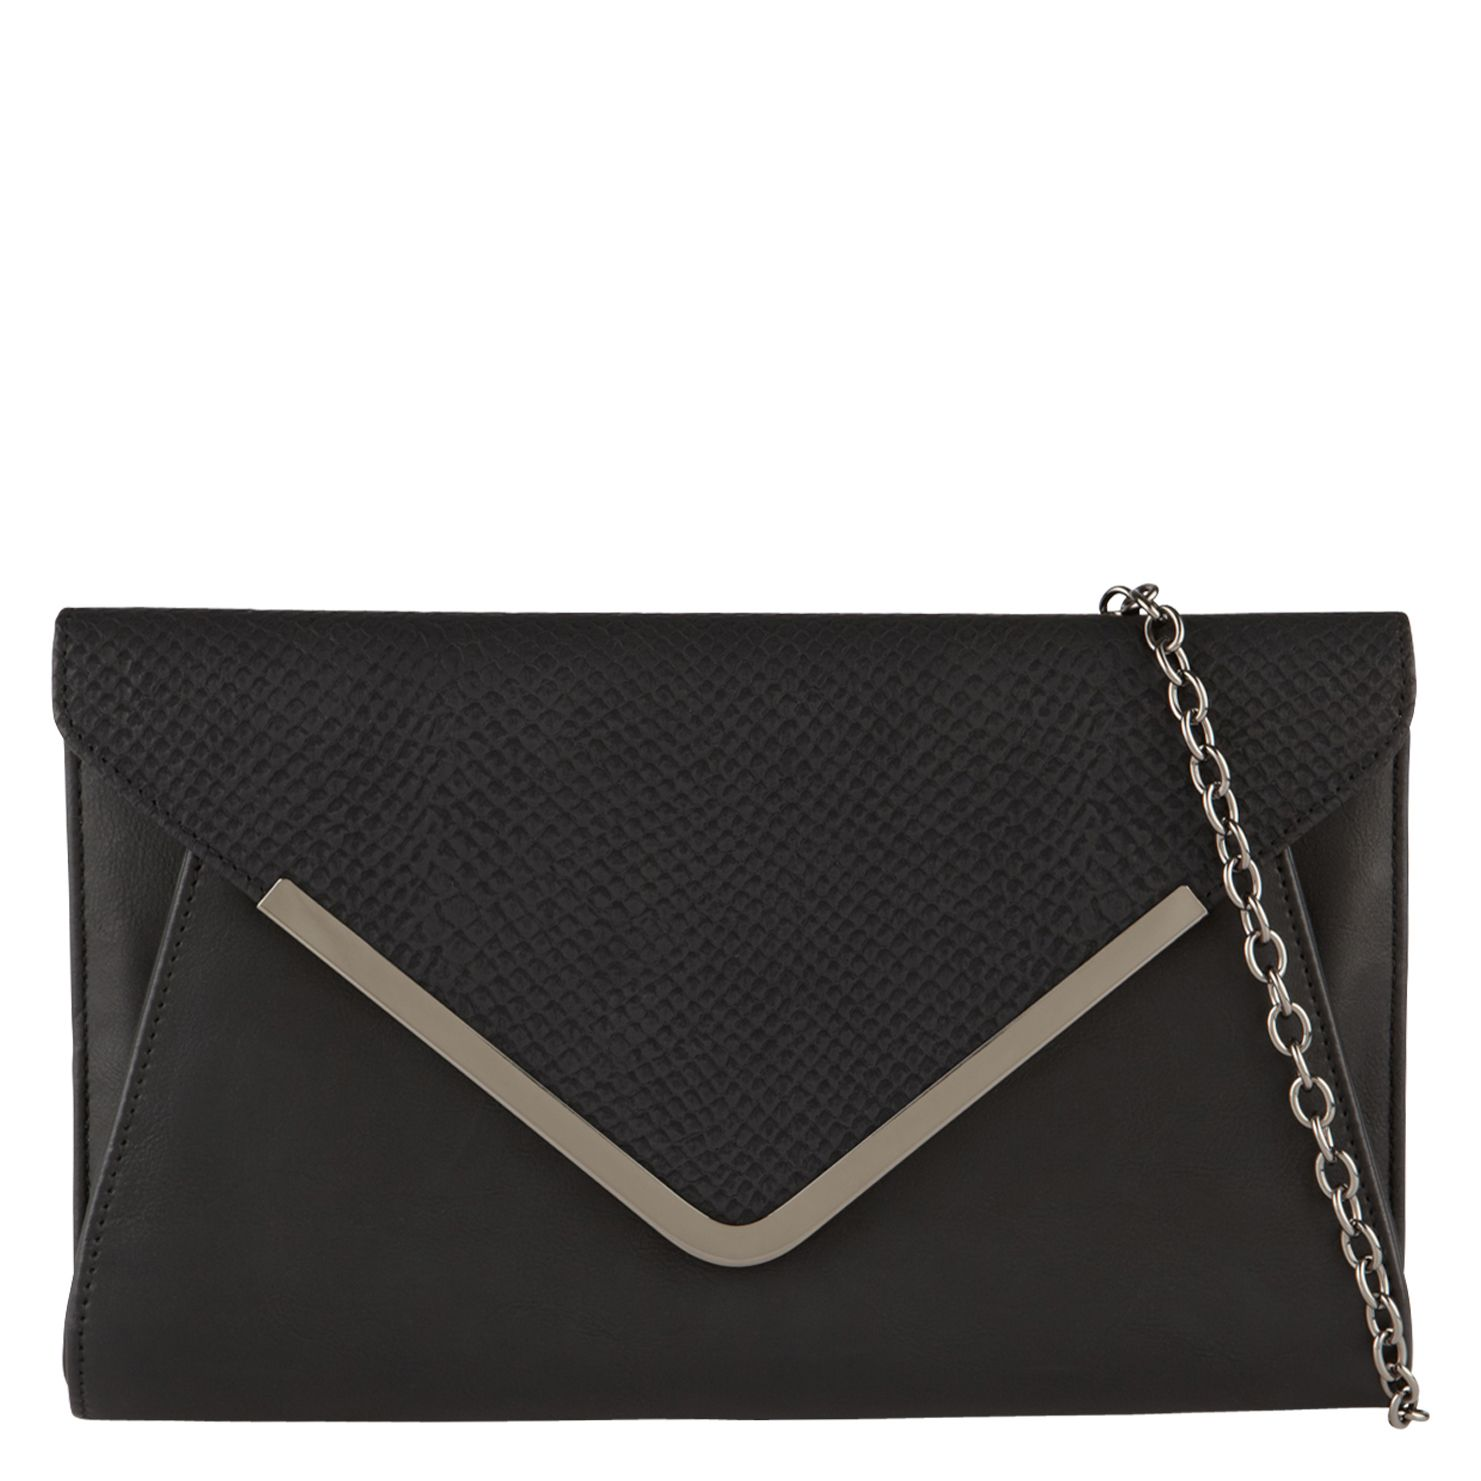 Derolja envelope clutch bag